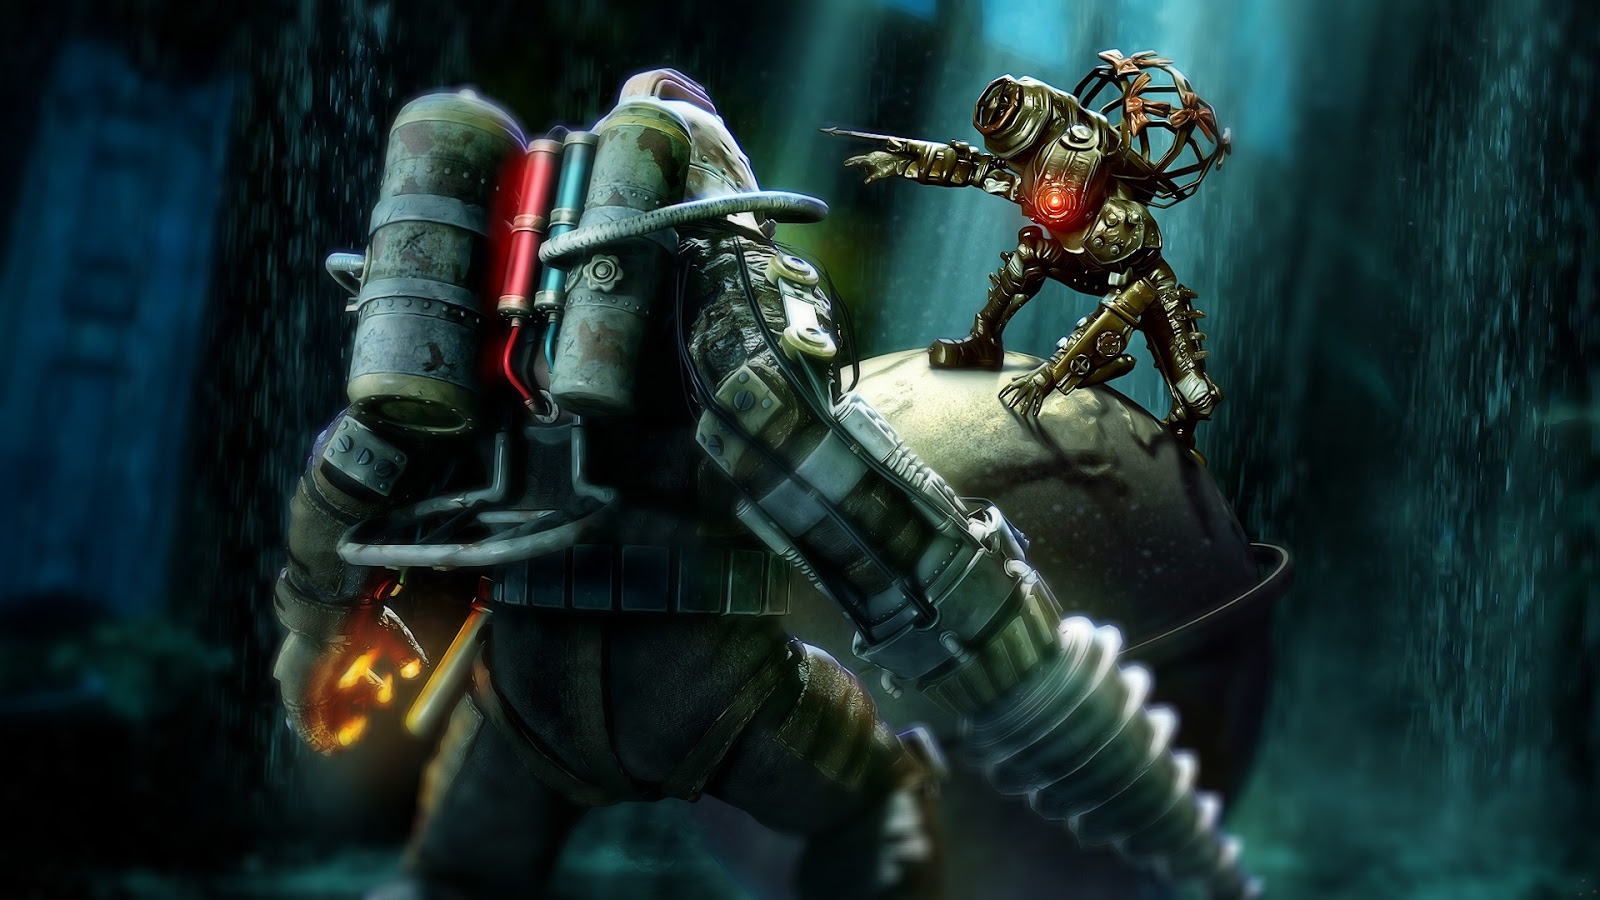 Bioshock Game Wallpaper